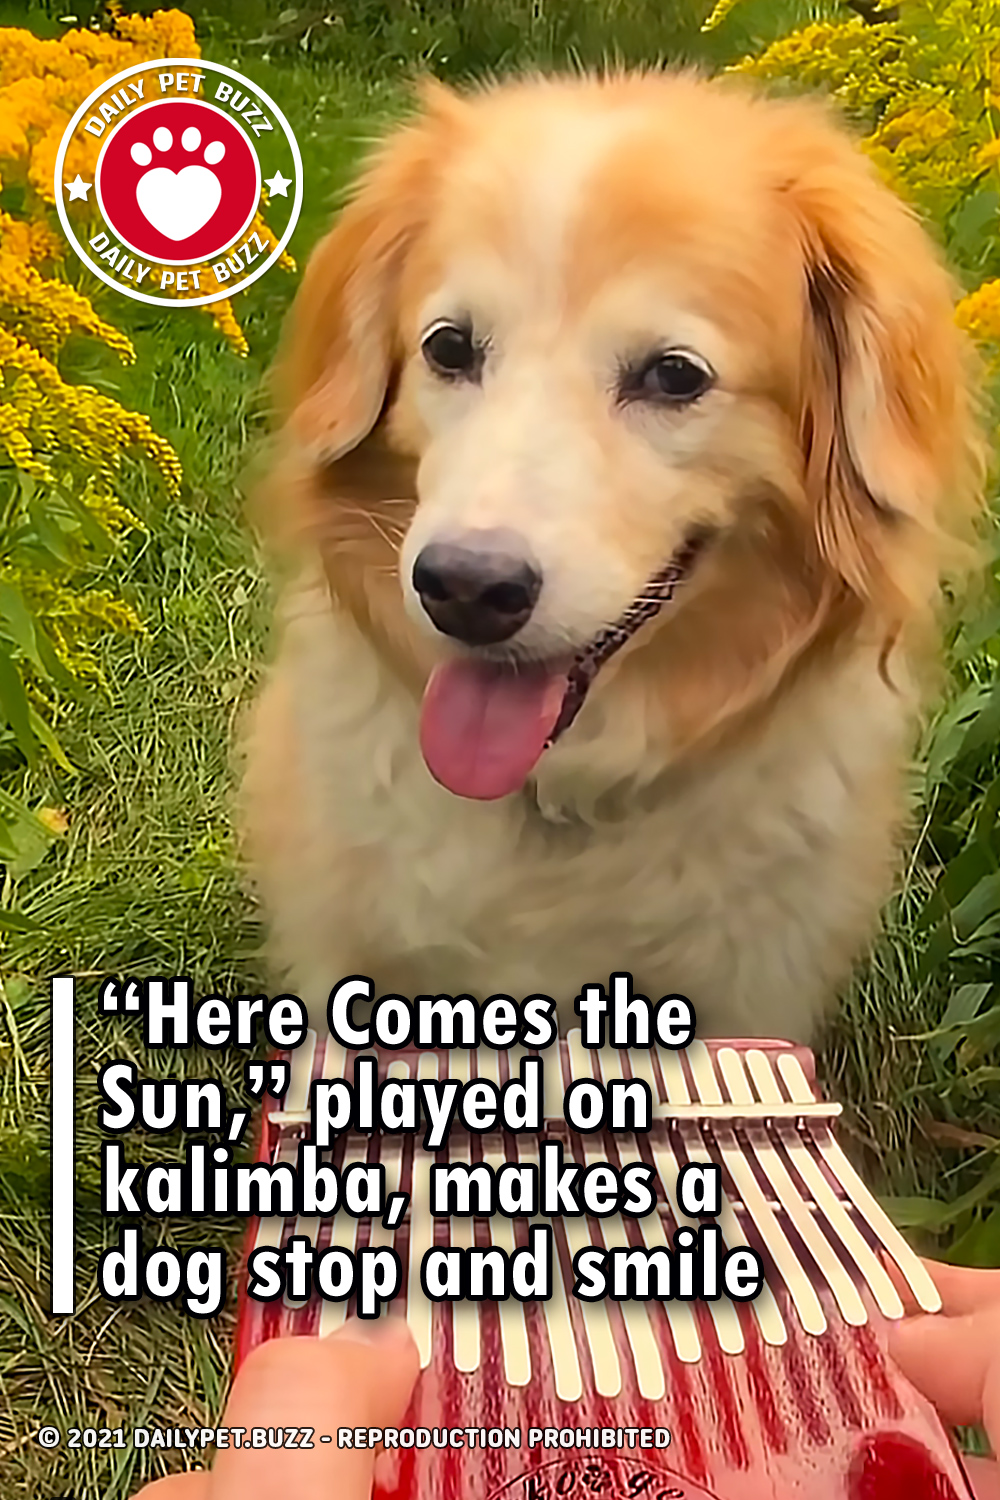 """Here Comes the Sun,"" played on kalimba, makes a dog stop and smile"